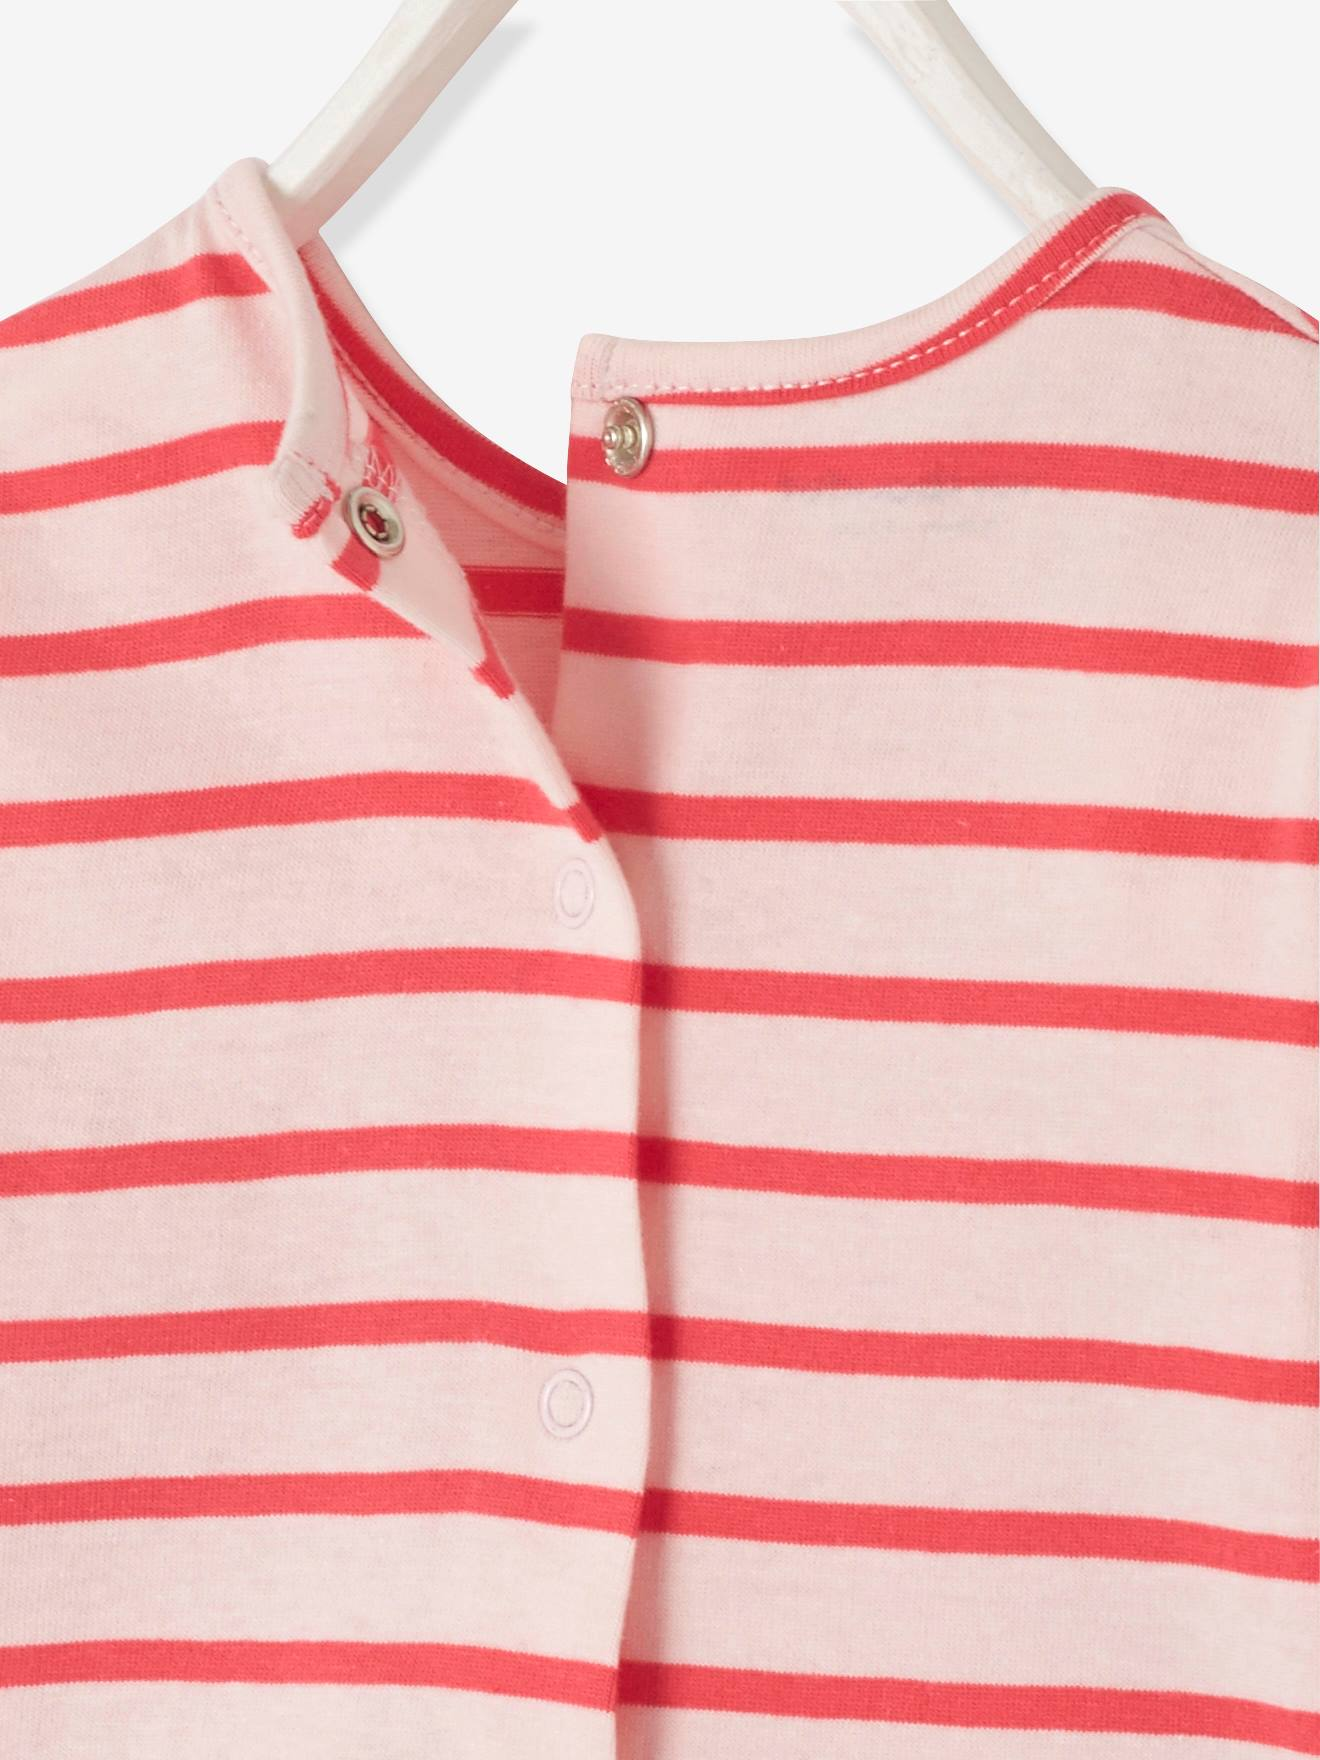 56042fae9 2-in-1 Sailor-Type Top for Baby Girls - red light striped, Baby